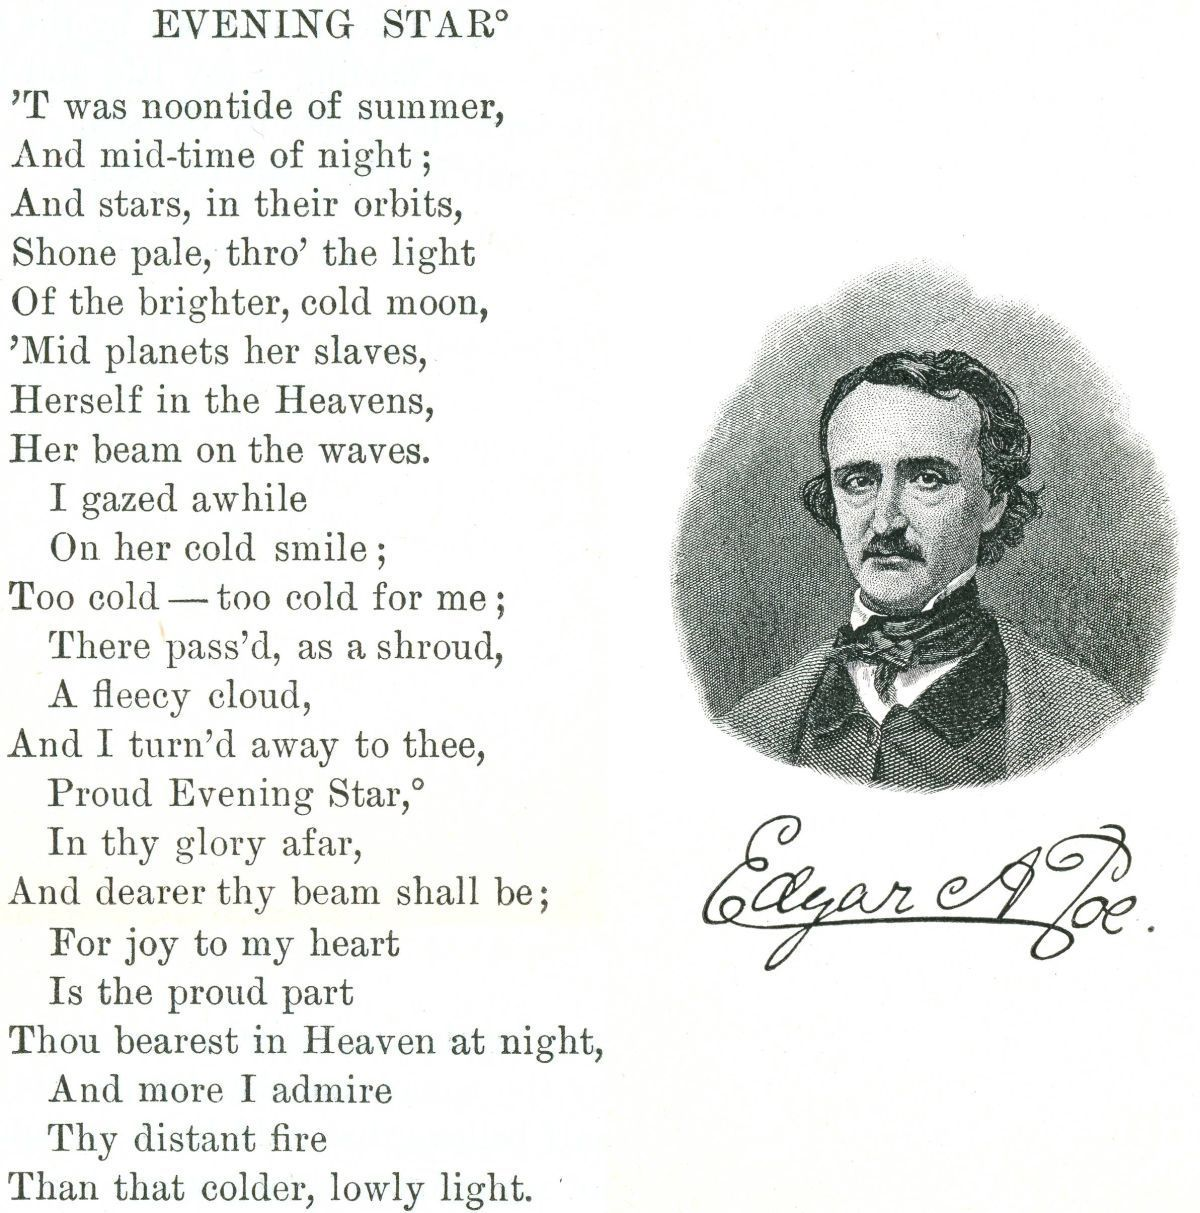 edgar allan poe evening star  replace image